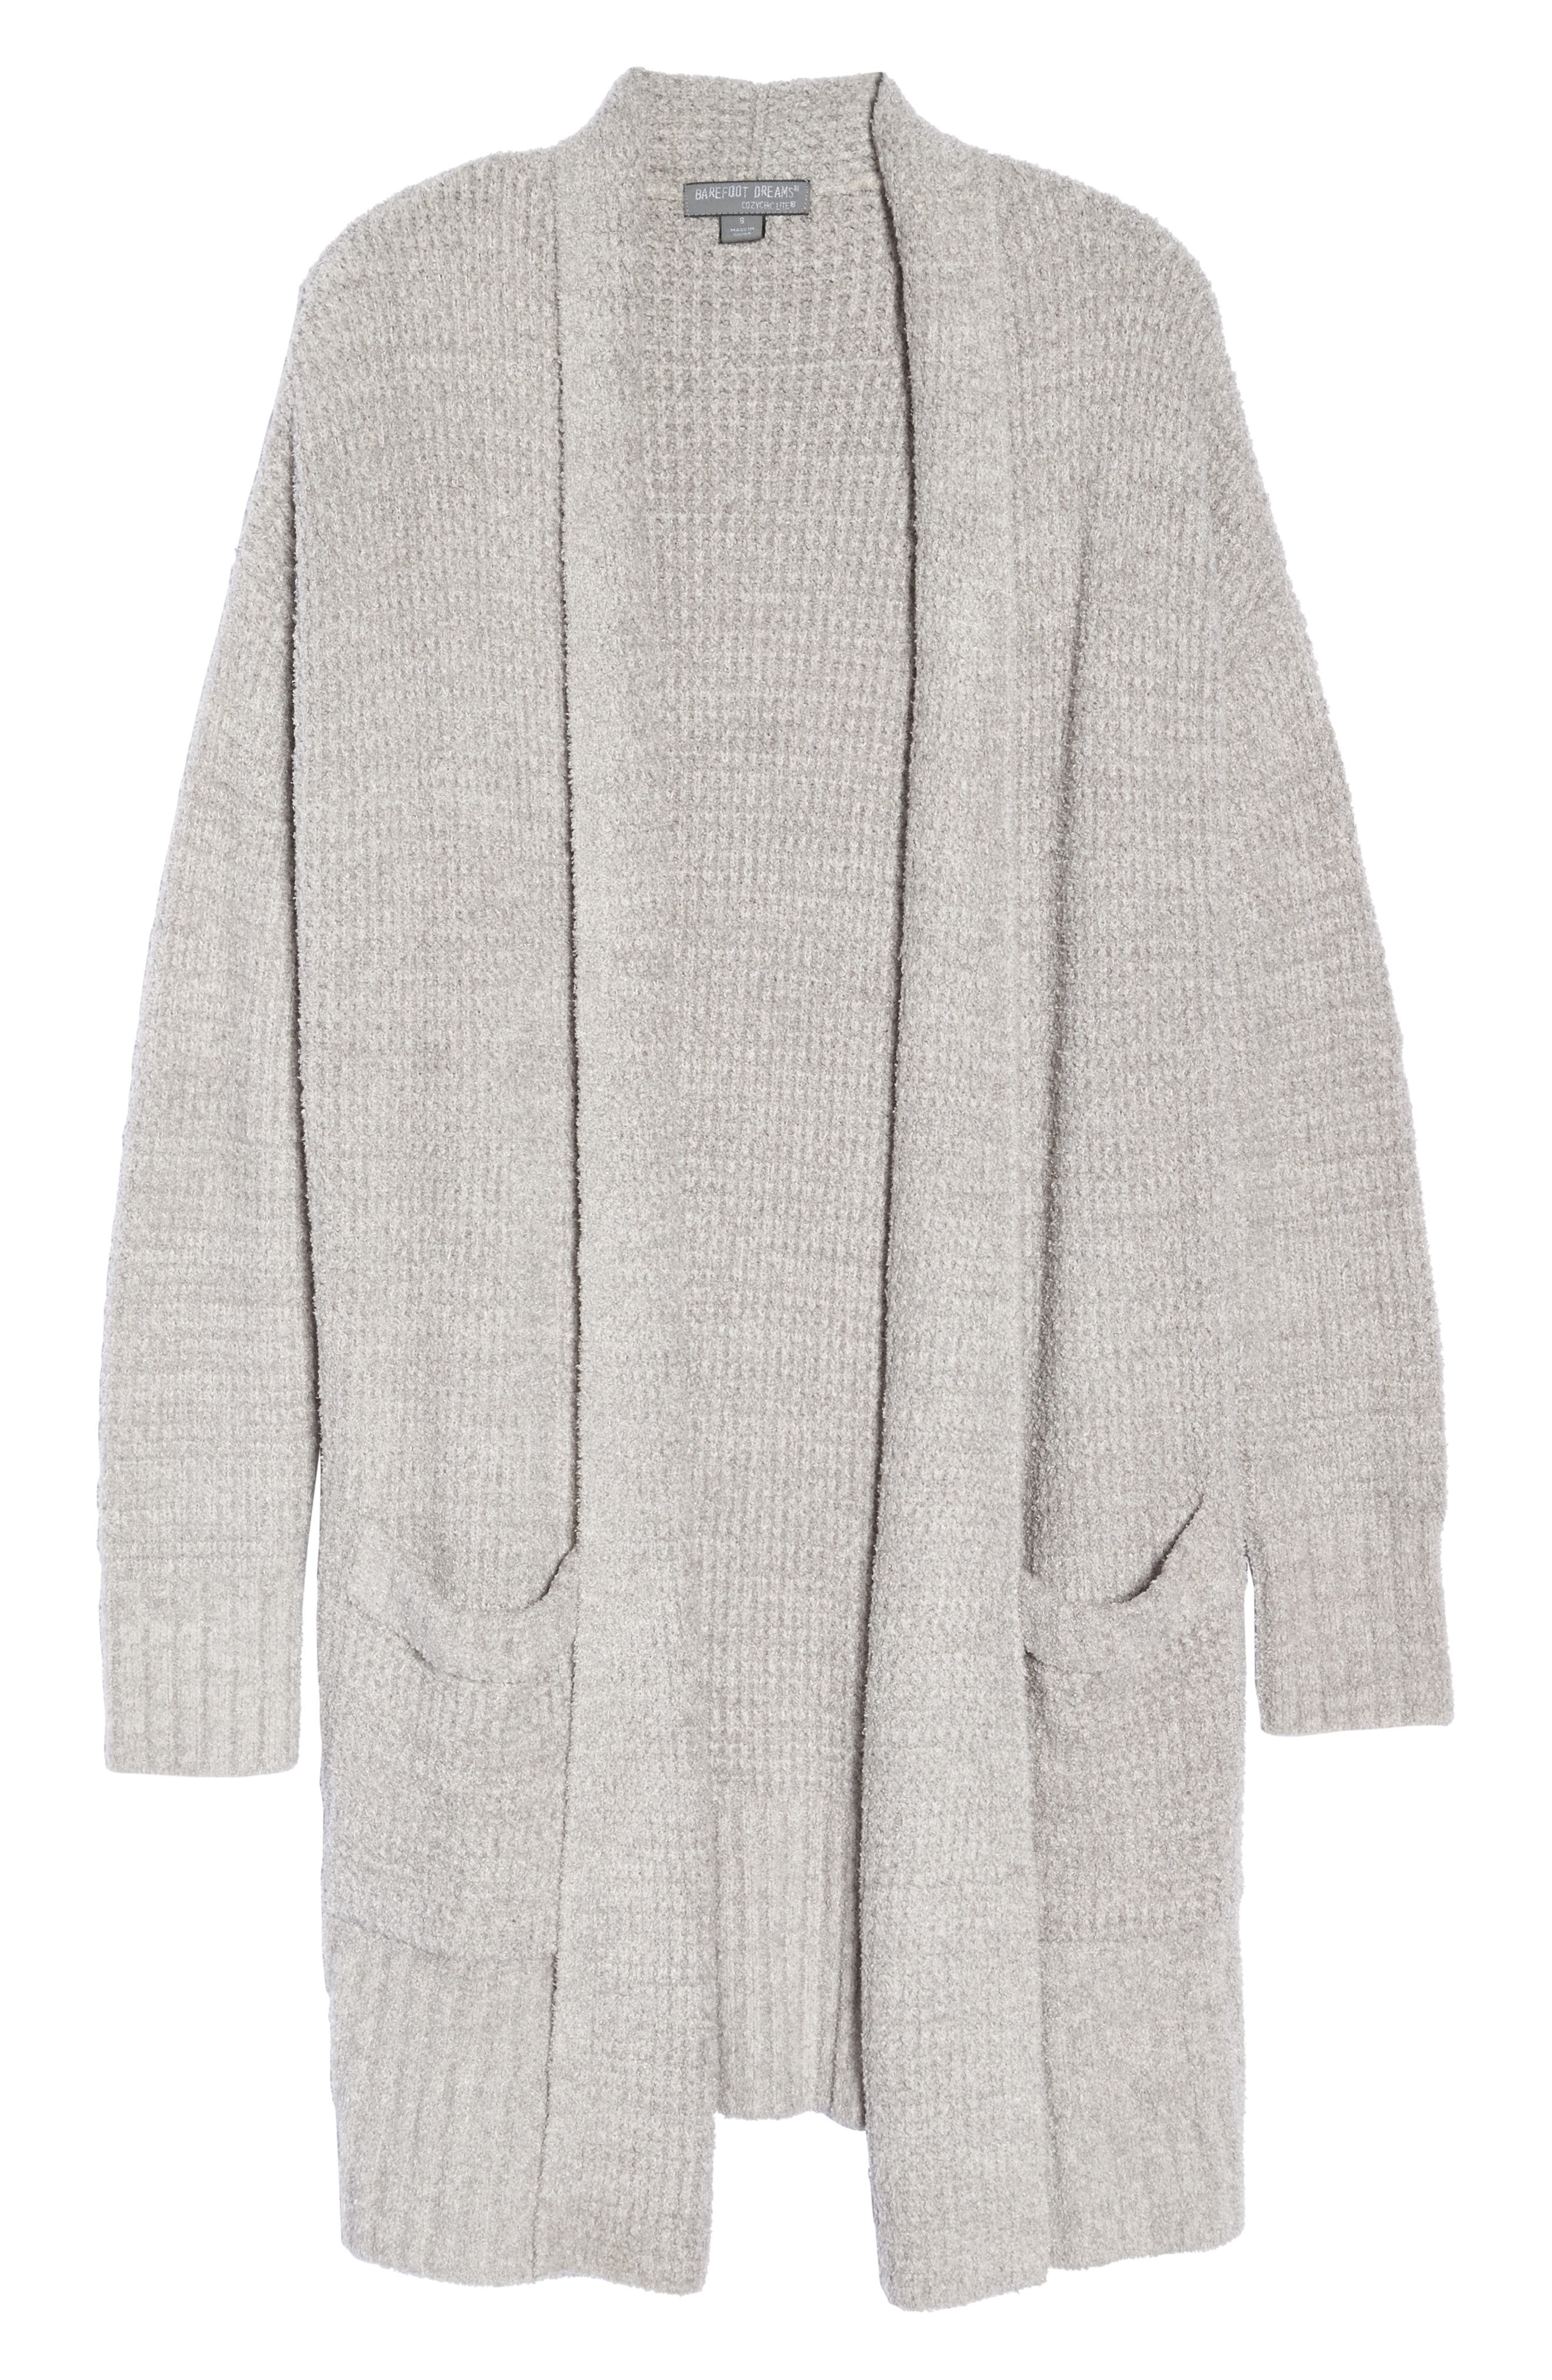 BAREFOOT DREAMS<SUP>®</SUP>, CozyChic<sup>®</sup> Lite Long Weekend Cardigan, Alternate thumbnail 6, color, 032